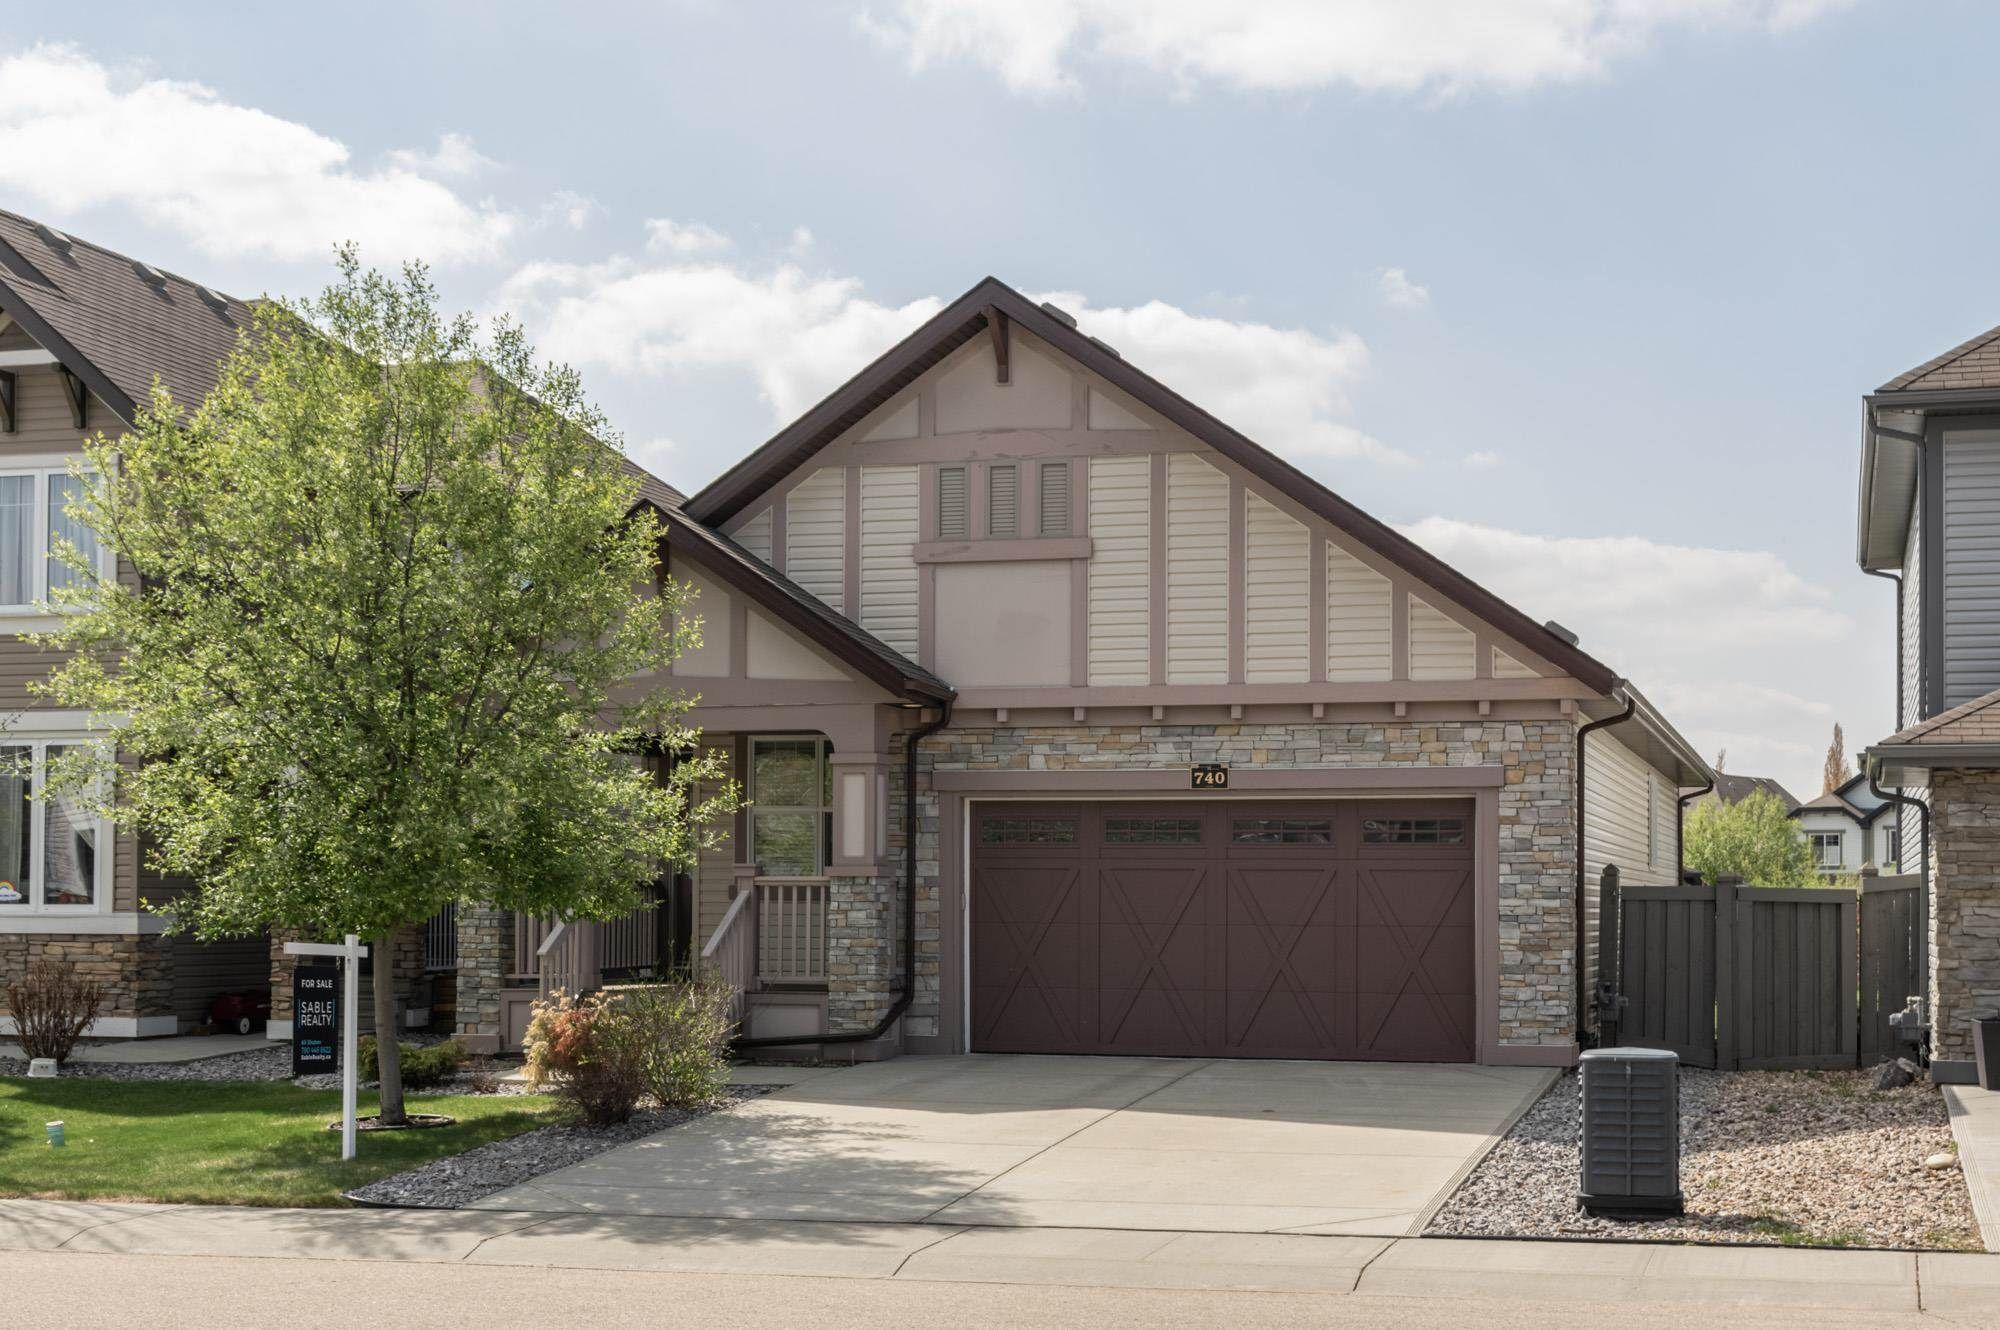 Main Photo: 740 HARDY Point in Edmonton: Zone 58 House for sale : MLS®# E4260300